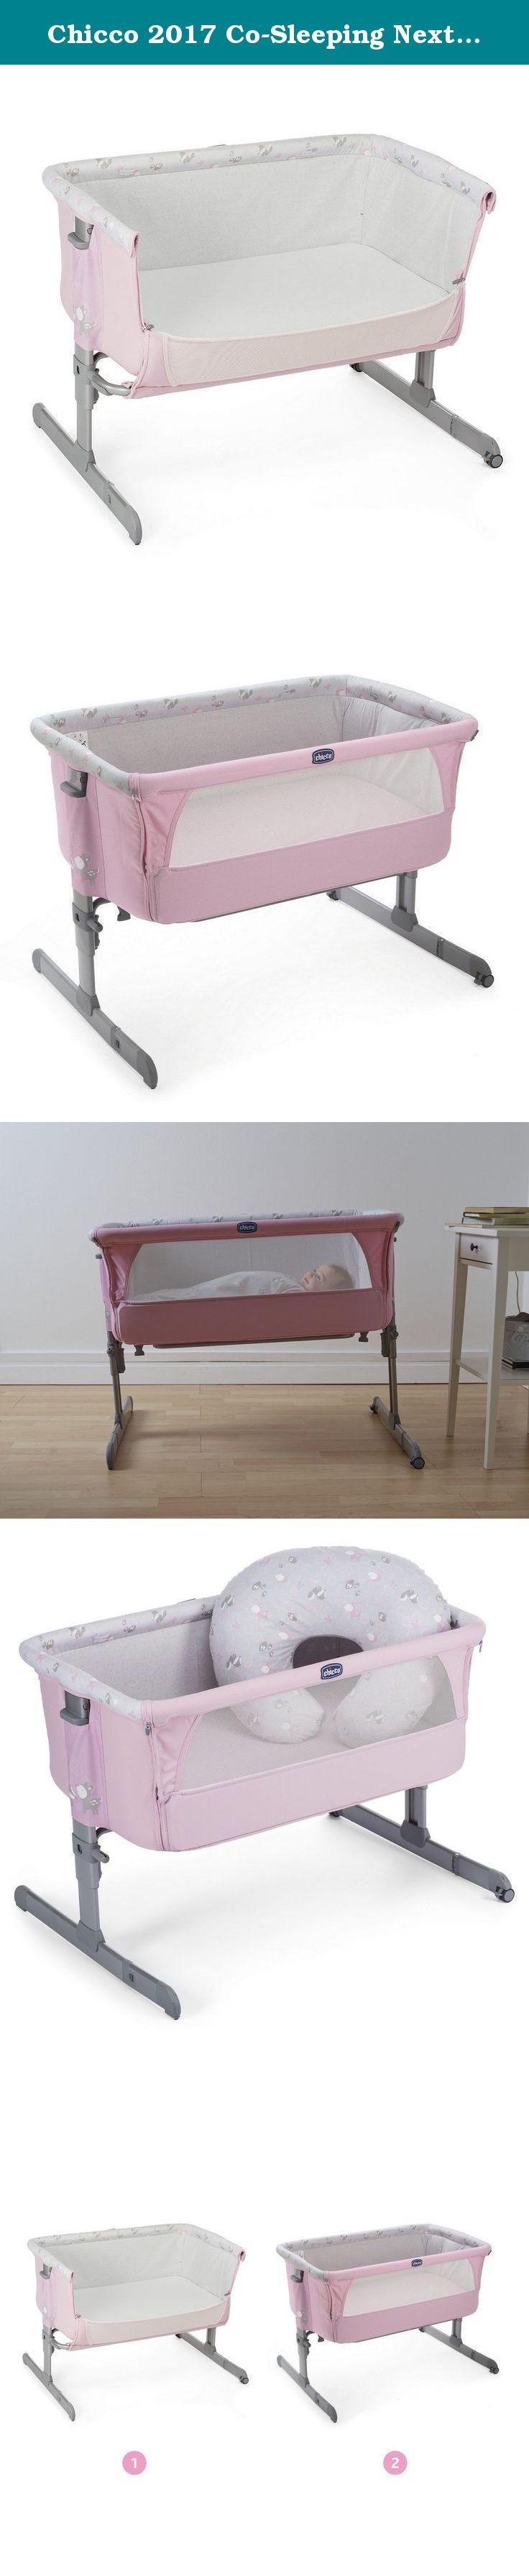 Chicco 2017 Co-Sleeping Next2Me Princess. berry Next2Me cradle Cradle Next2Me, everyone is happy. Space dedicated to sleep and dormitine where chasing wonderful dreams or exchanging smiles with mom and dad, the cradle is not only an essential accessory for any parent but also the environment that aims to transmit to the baby protection and safety from the earliest months, making the transition from the womb to the sweetest ectopic, natural and gradual. Designed to strengthen the bond…